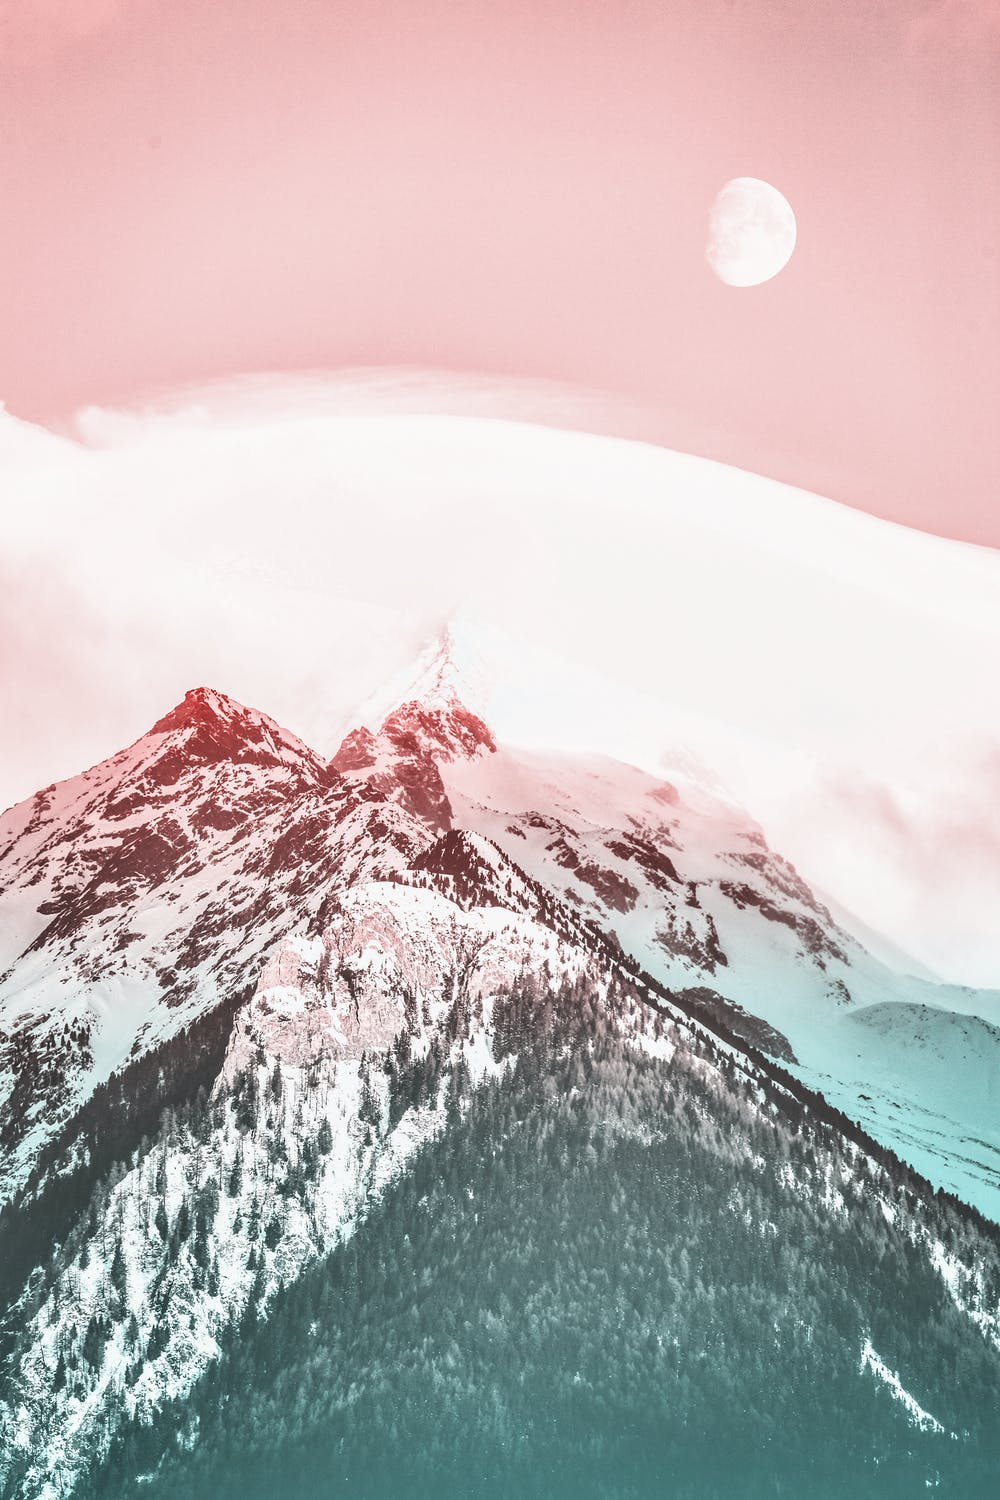 Mountain wallpaper with pink sky